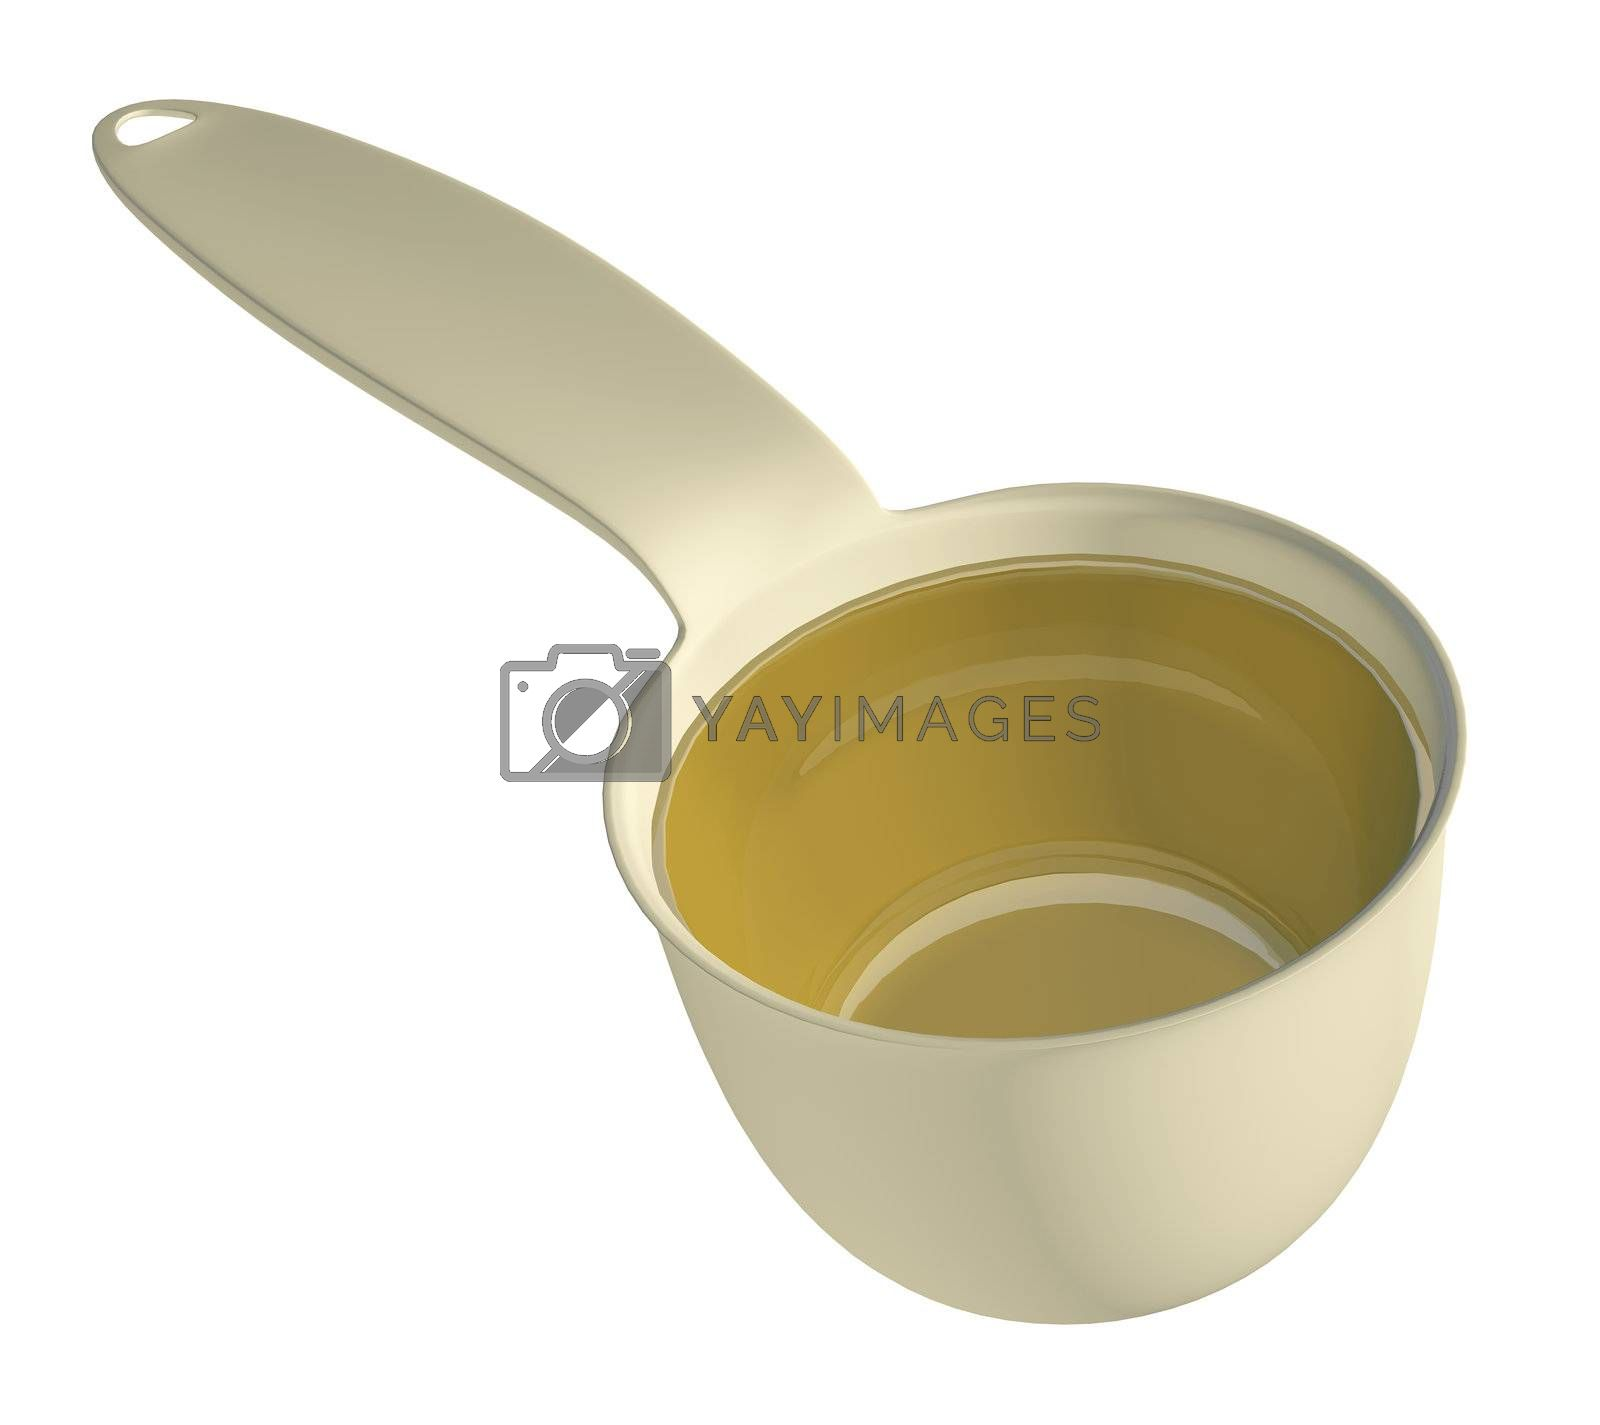 Yellow or gold kitchen measure tool, 3d illustration, isolated against a white background